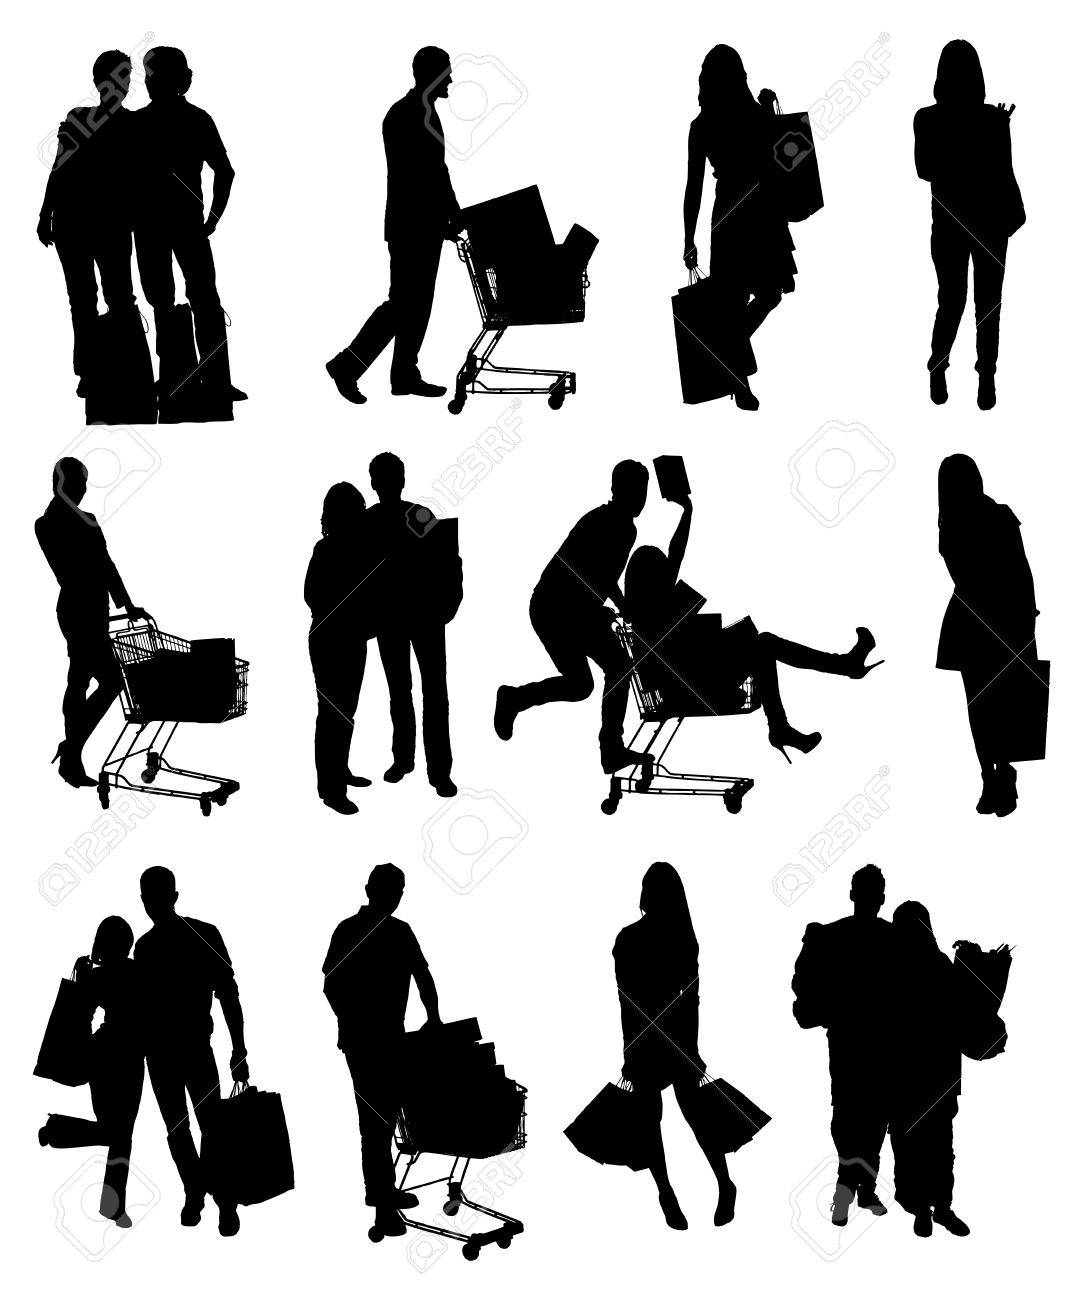 Collage Of People Silhouettes Holding Shopping Bags. Vector Image - 47216017